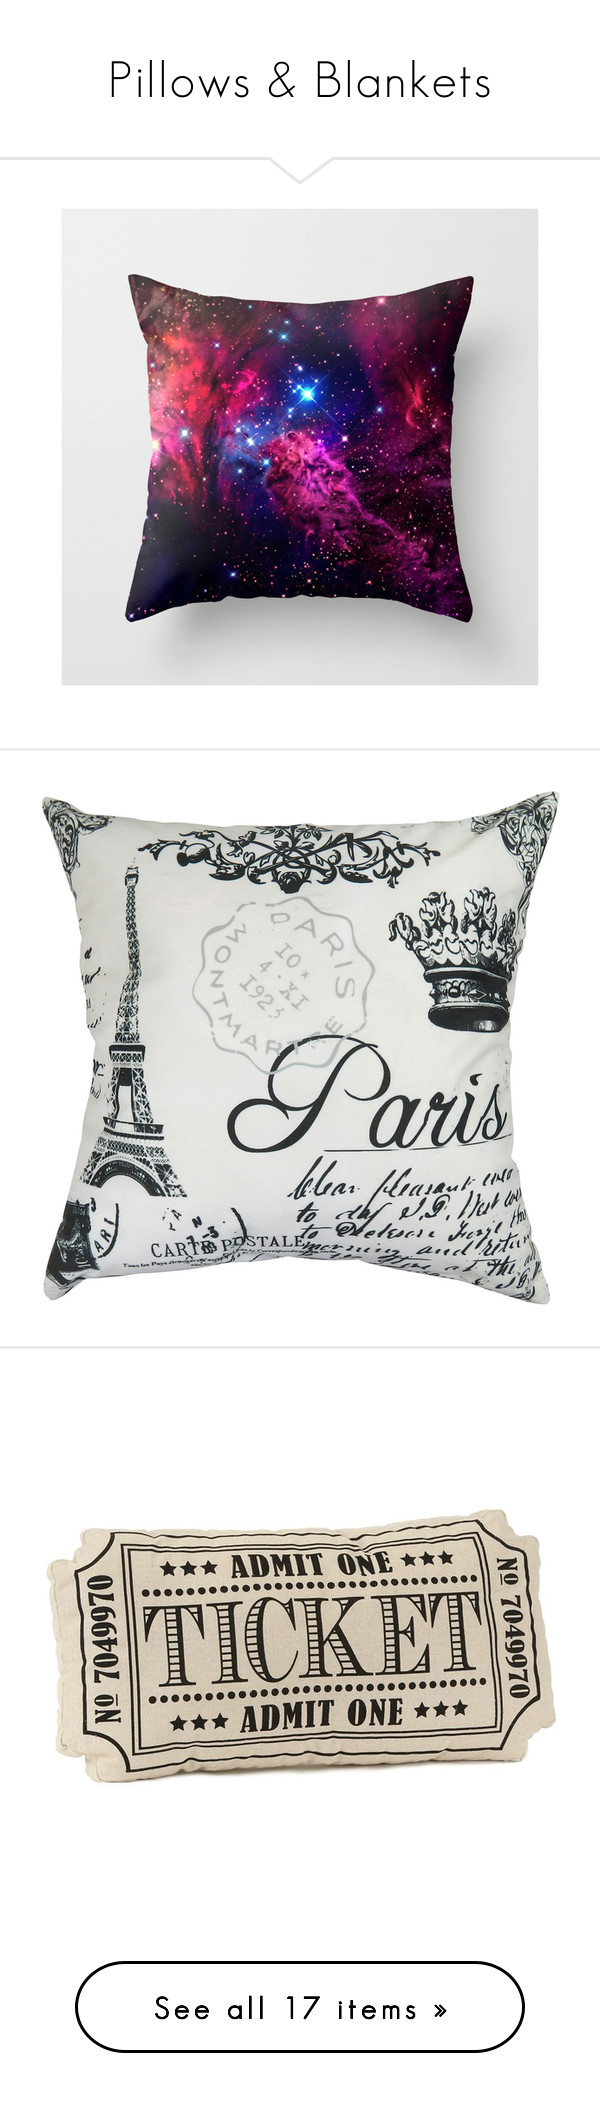 """""""Pillows & Blankets"""" by horrorkitty ❤ liked on Polyvore featuring home, home decor, throw pillows, pillows, paris, paris throw pillows, paris home decor, parisian home decor, feather throw pillows and fillers"""